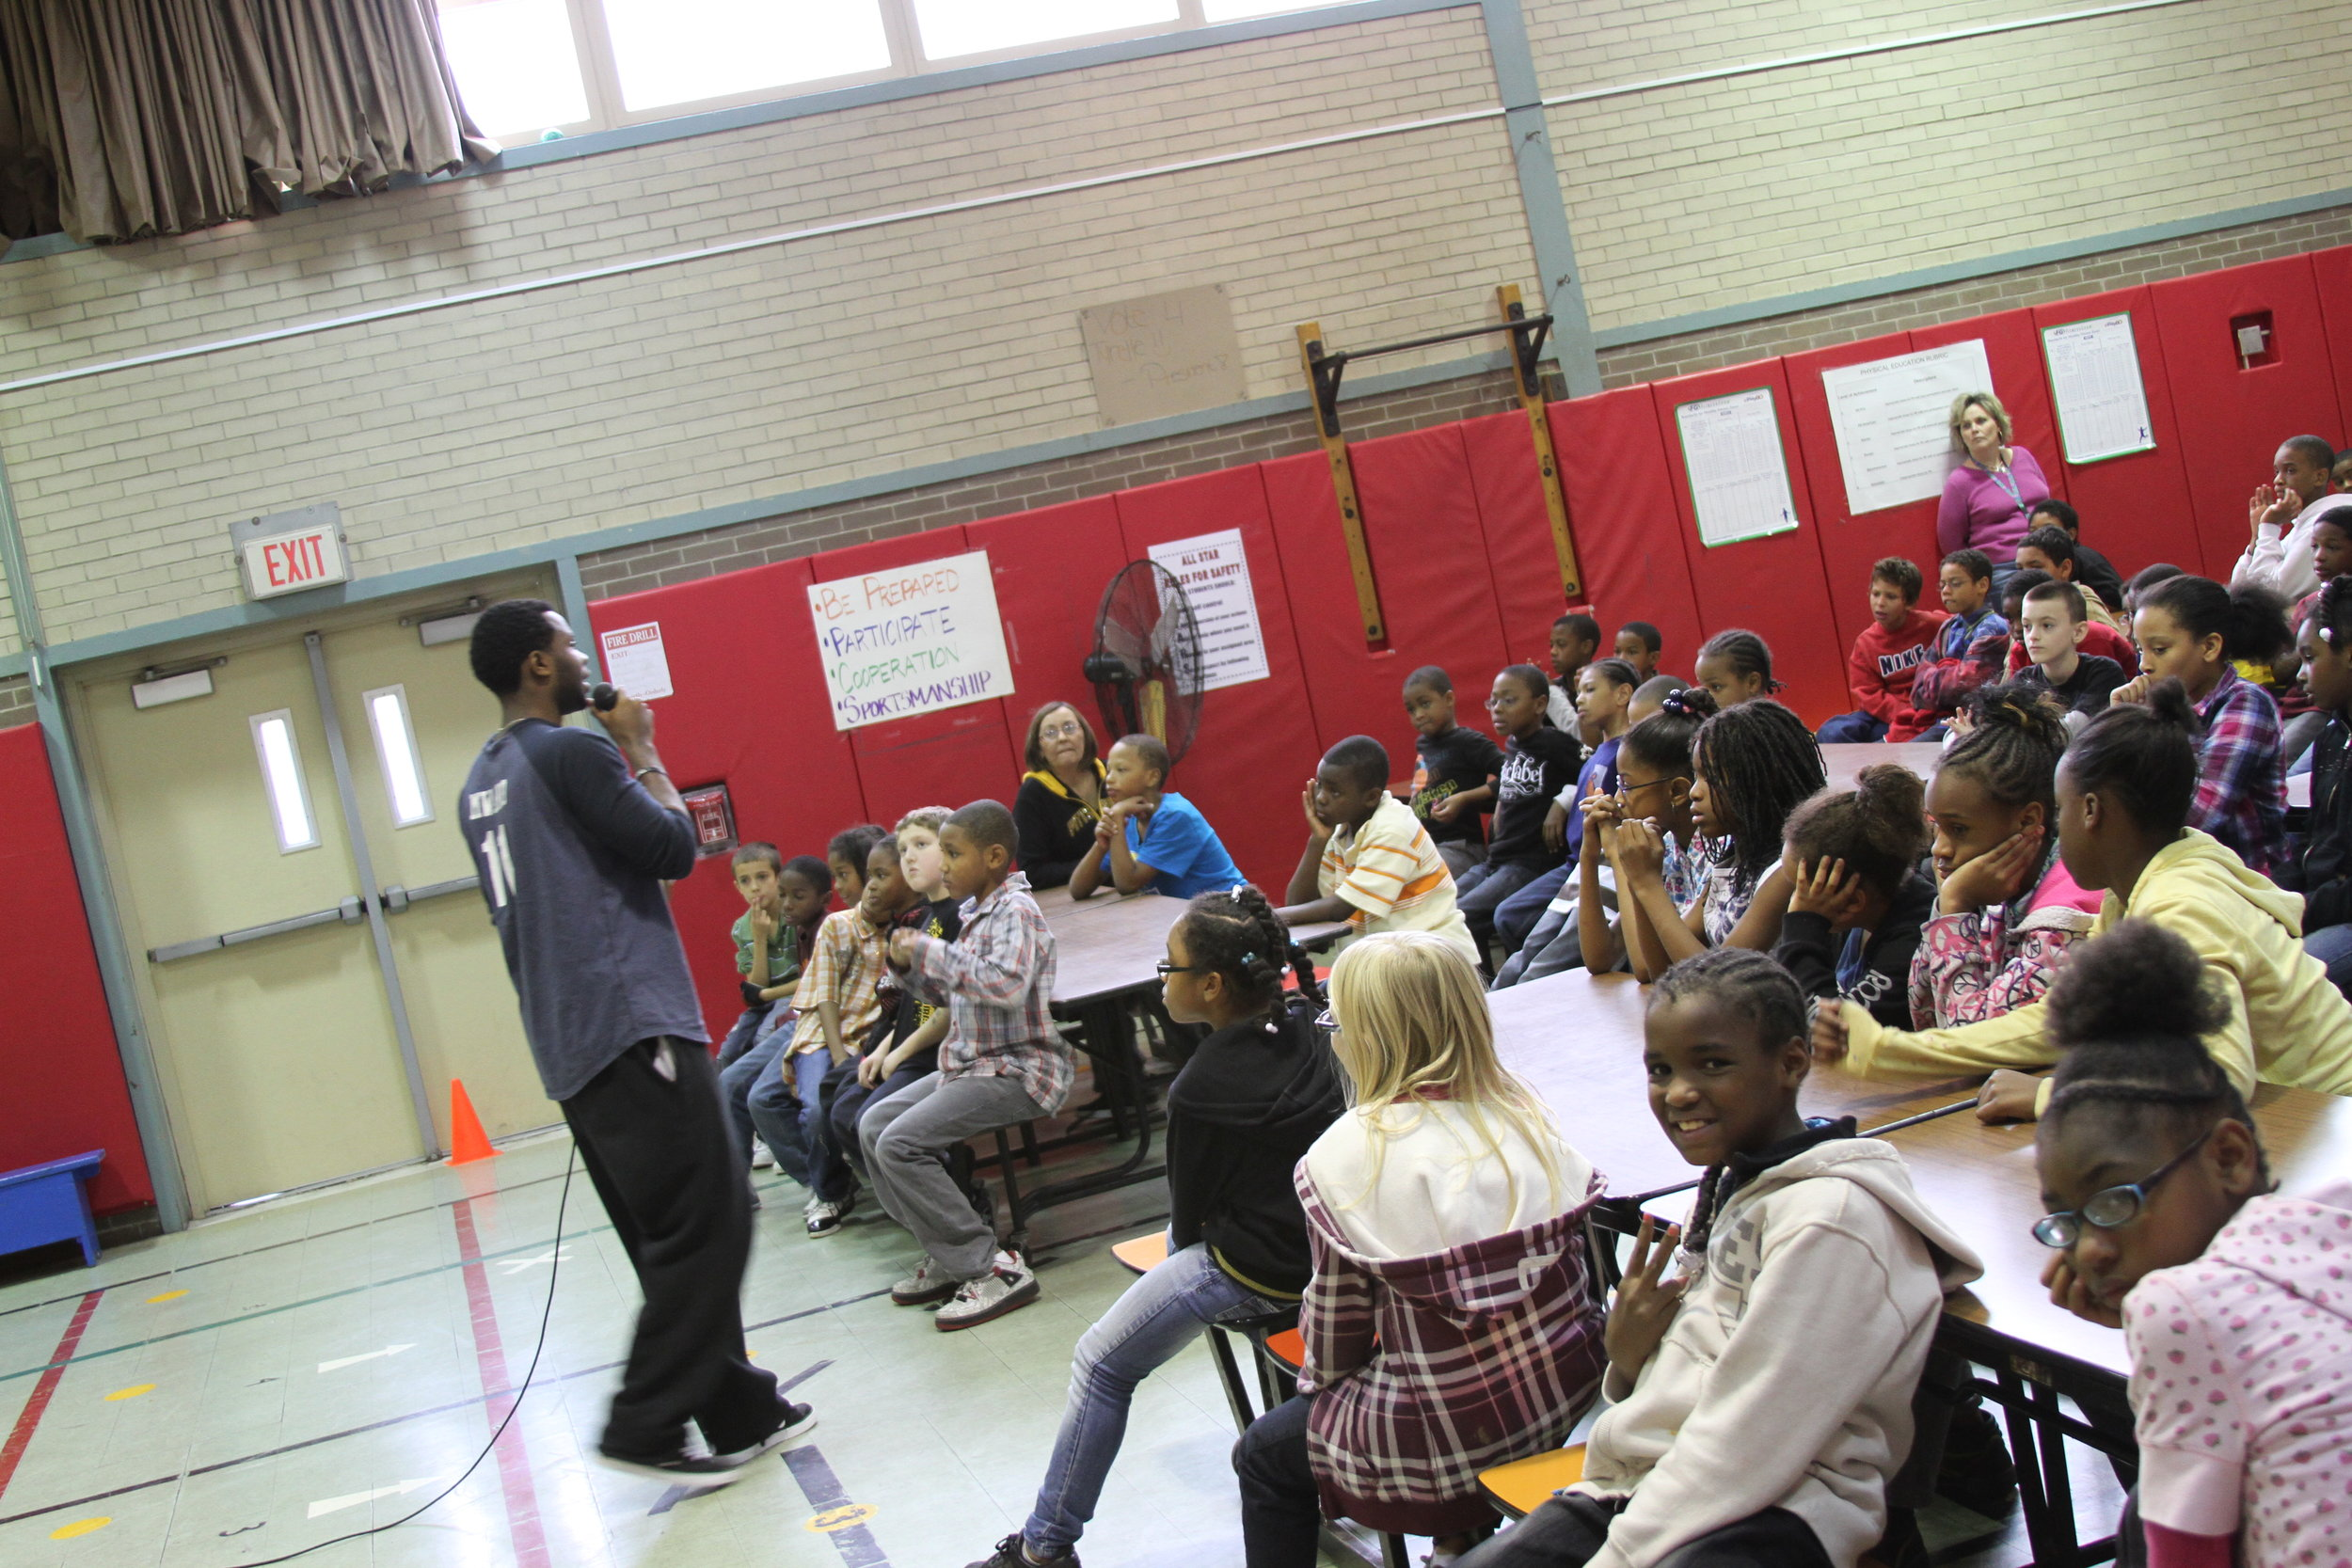 Deo speaking to a group of students in Pittsburgh, PA